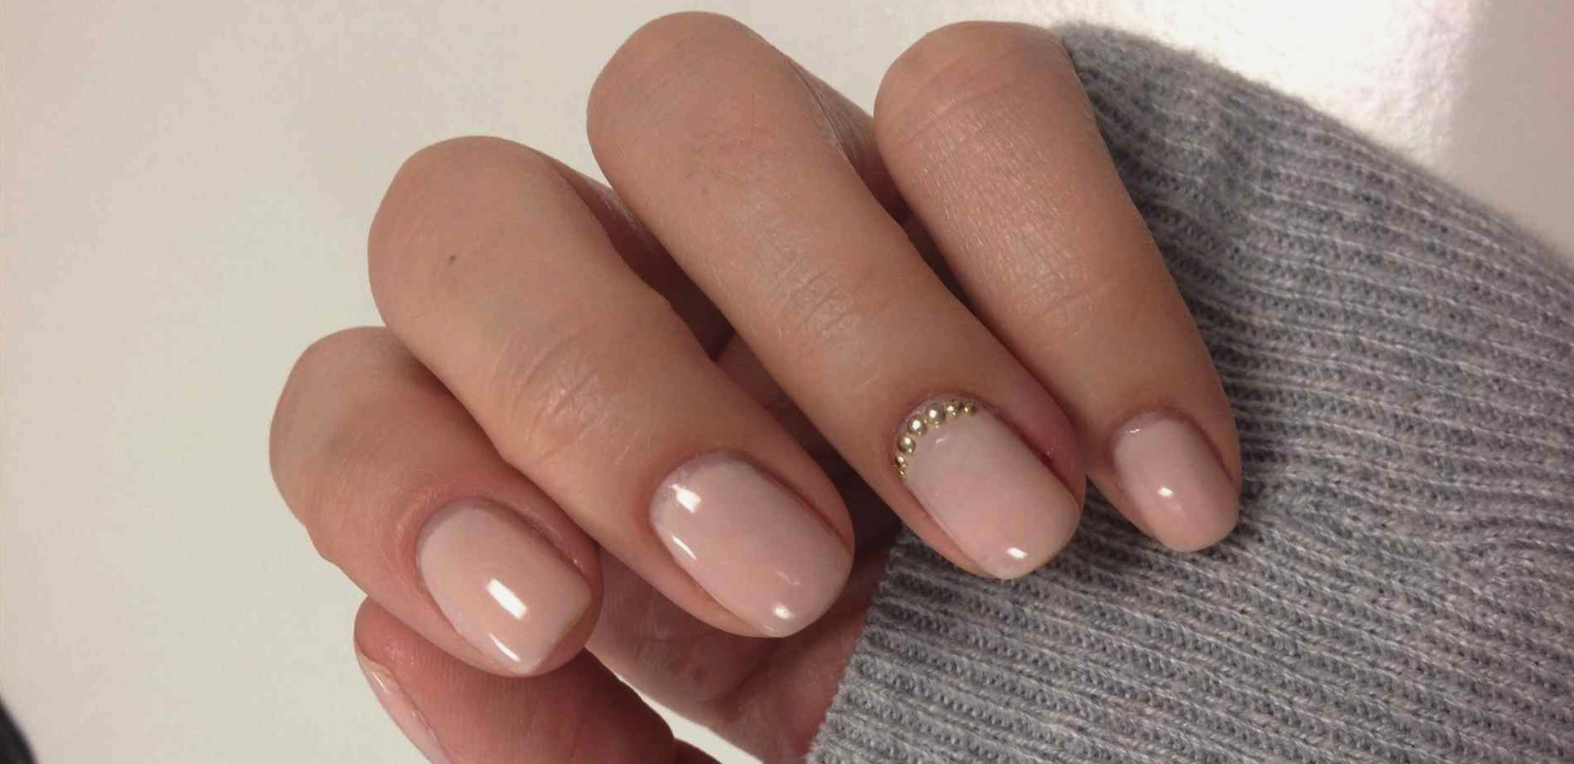 shellac manicure with polish removal